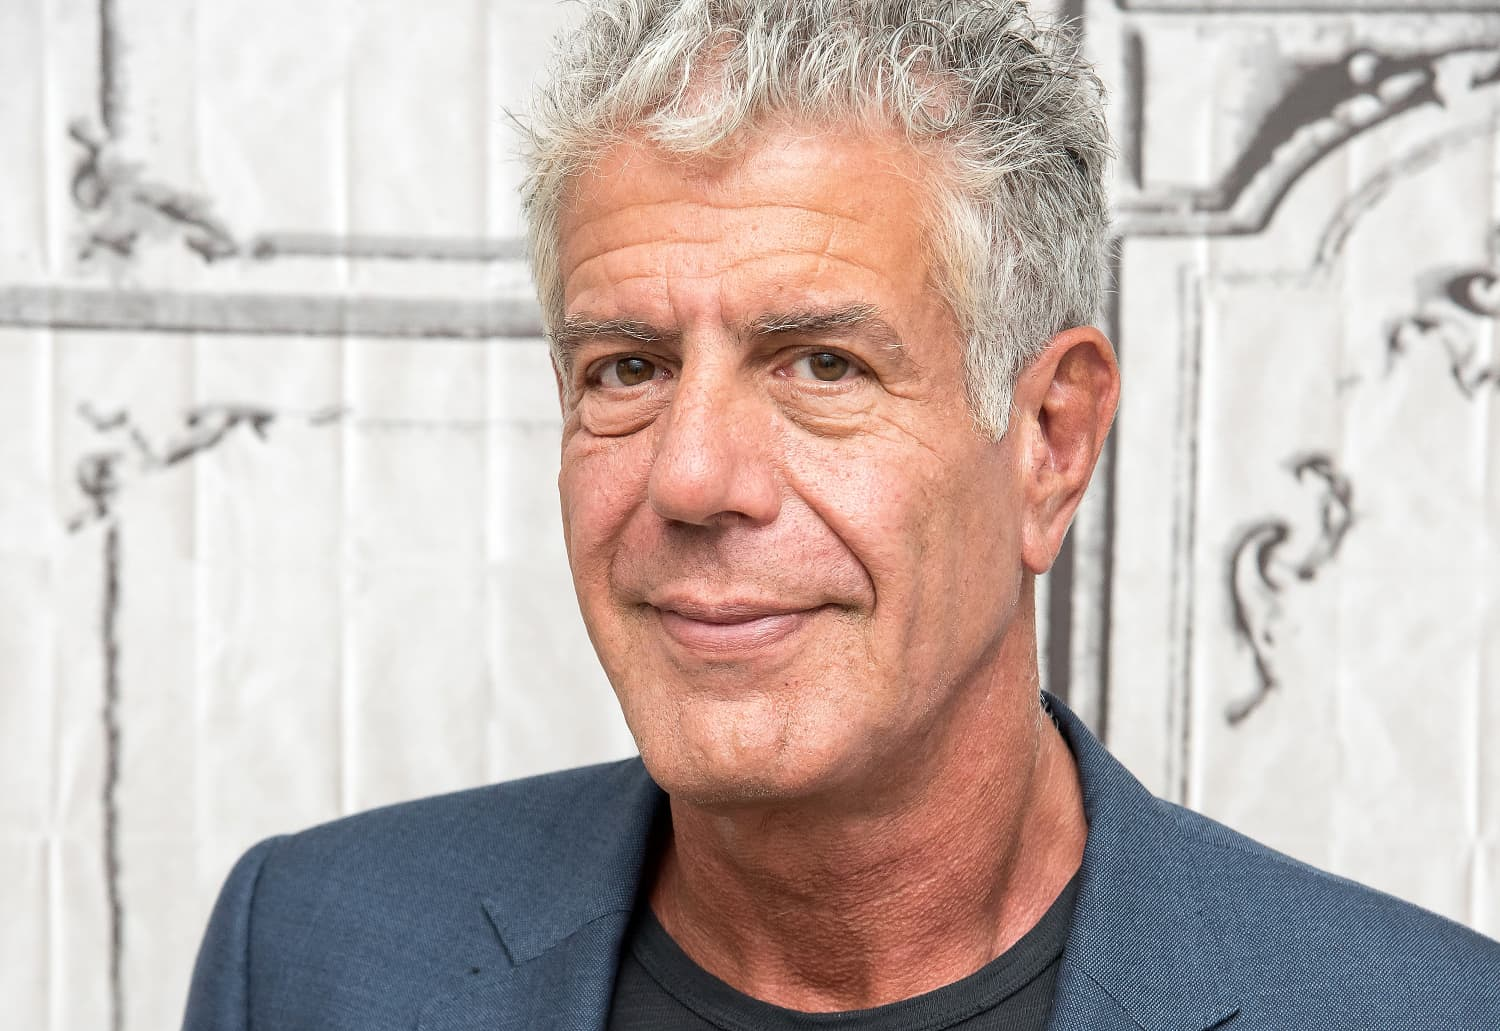 You Can Buy Anthony Bourdain's Prized Possessions at an Auction to Raise Money for His Family